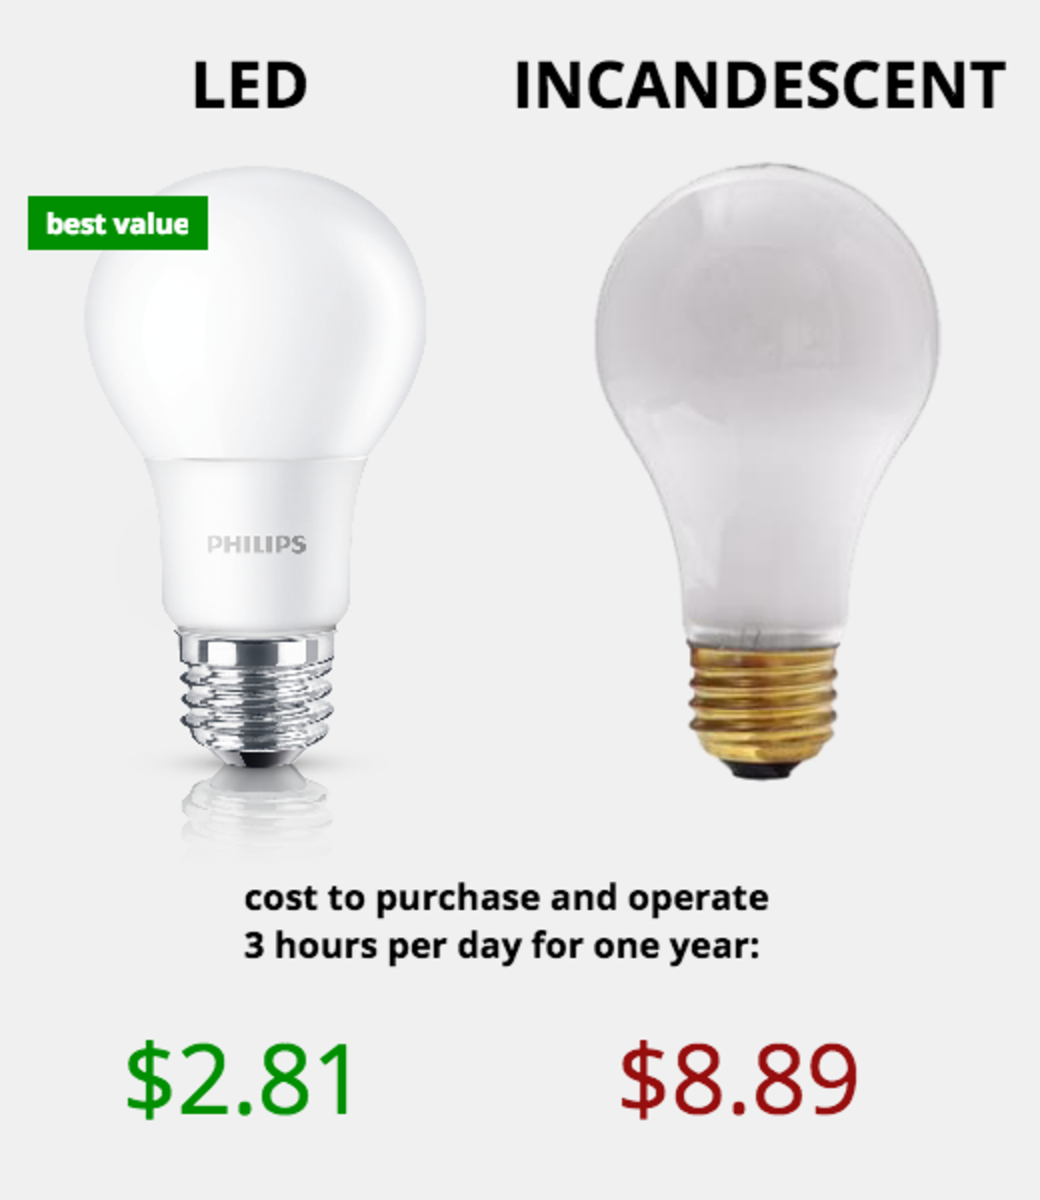 LED vs Incandescent light bulbs: Although they have a slightly higher initial cost, LED lights make for lower cost, more efficient lighting